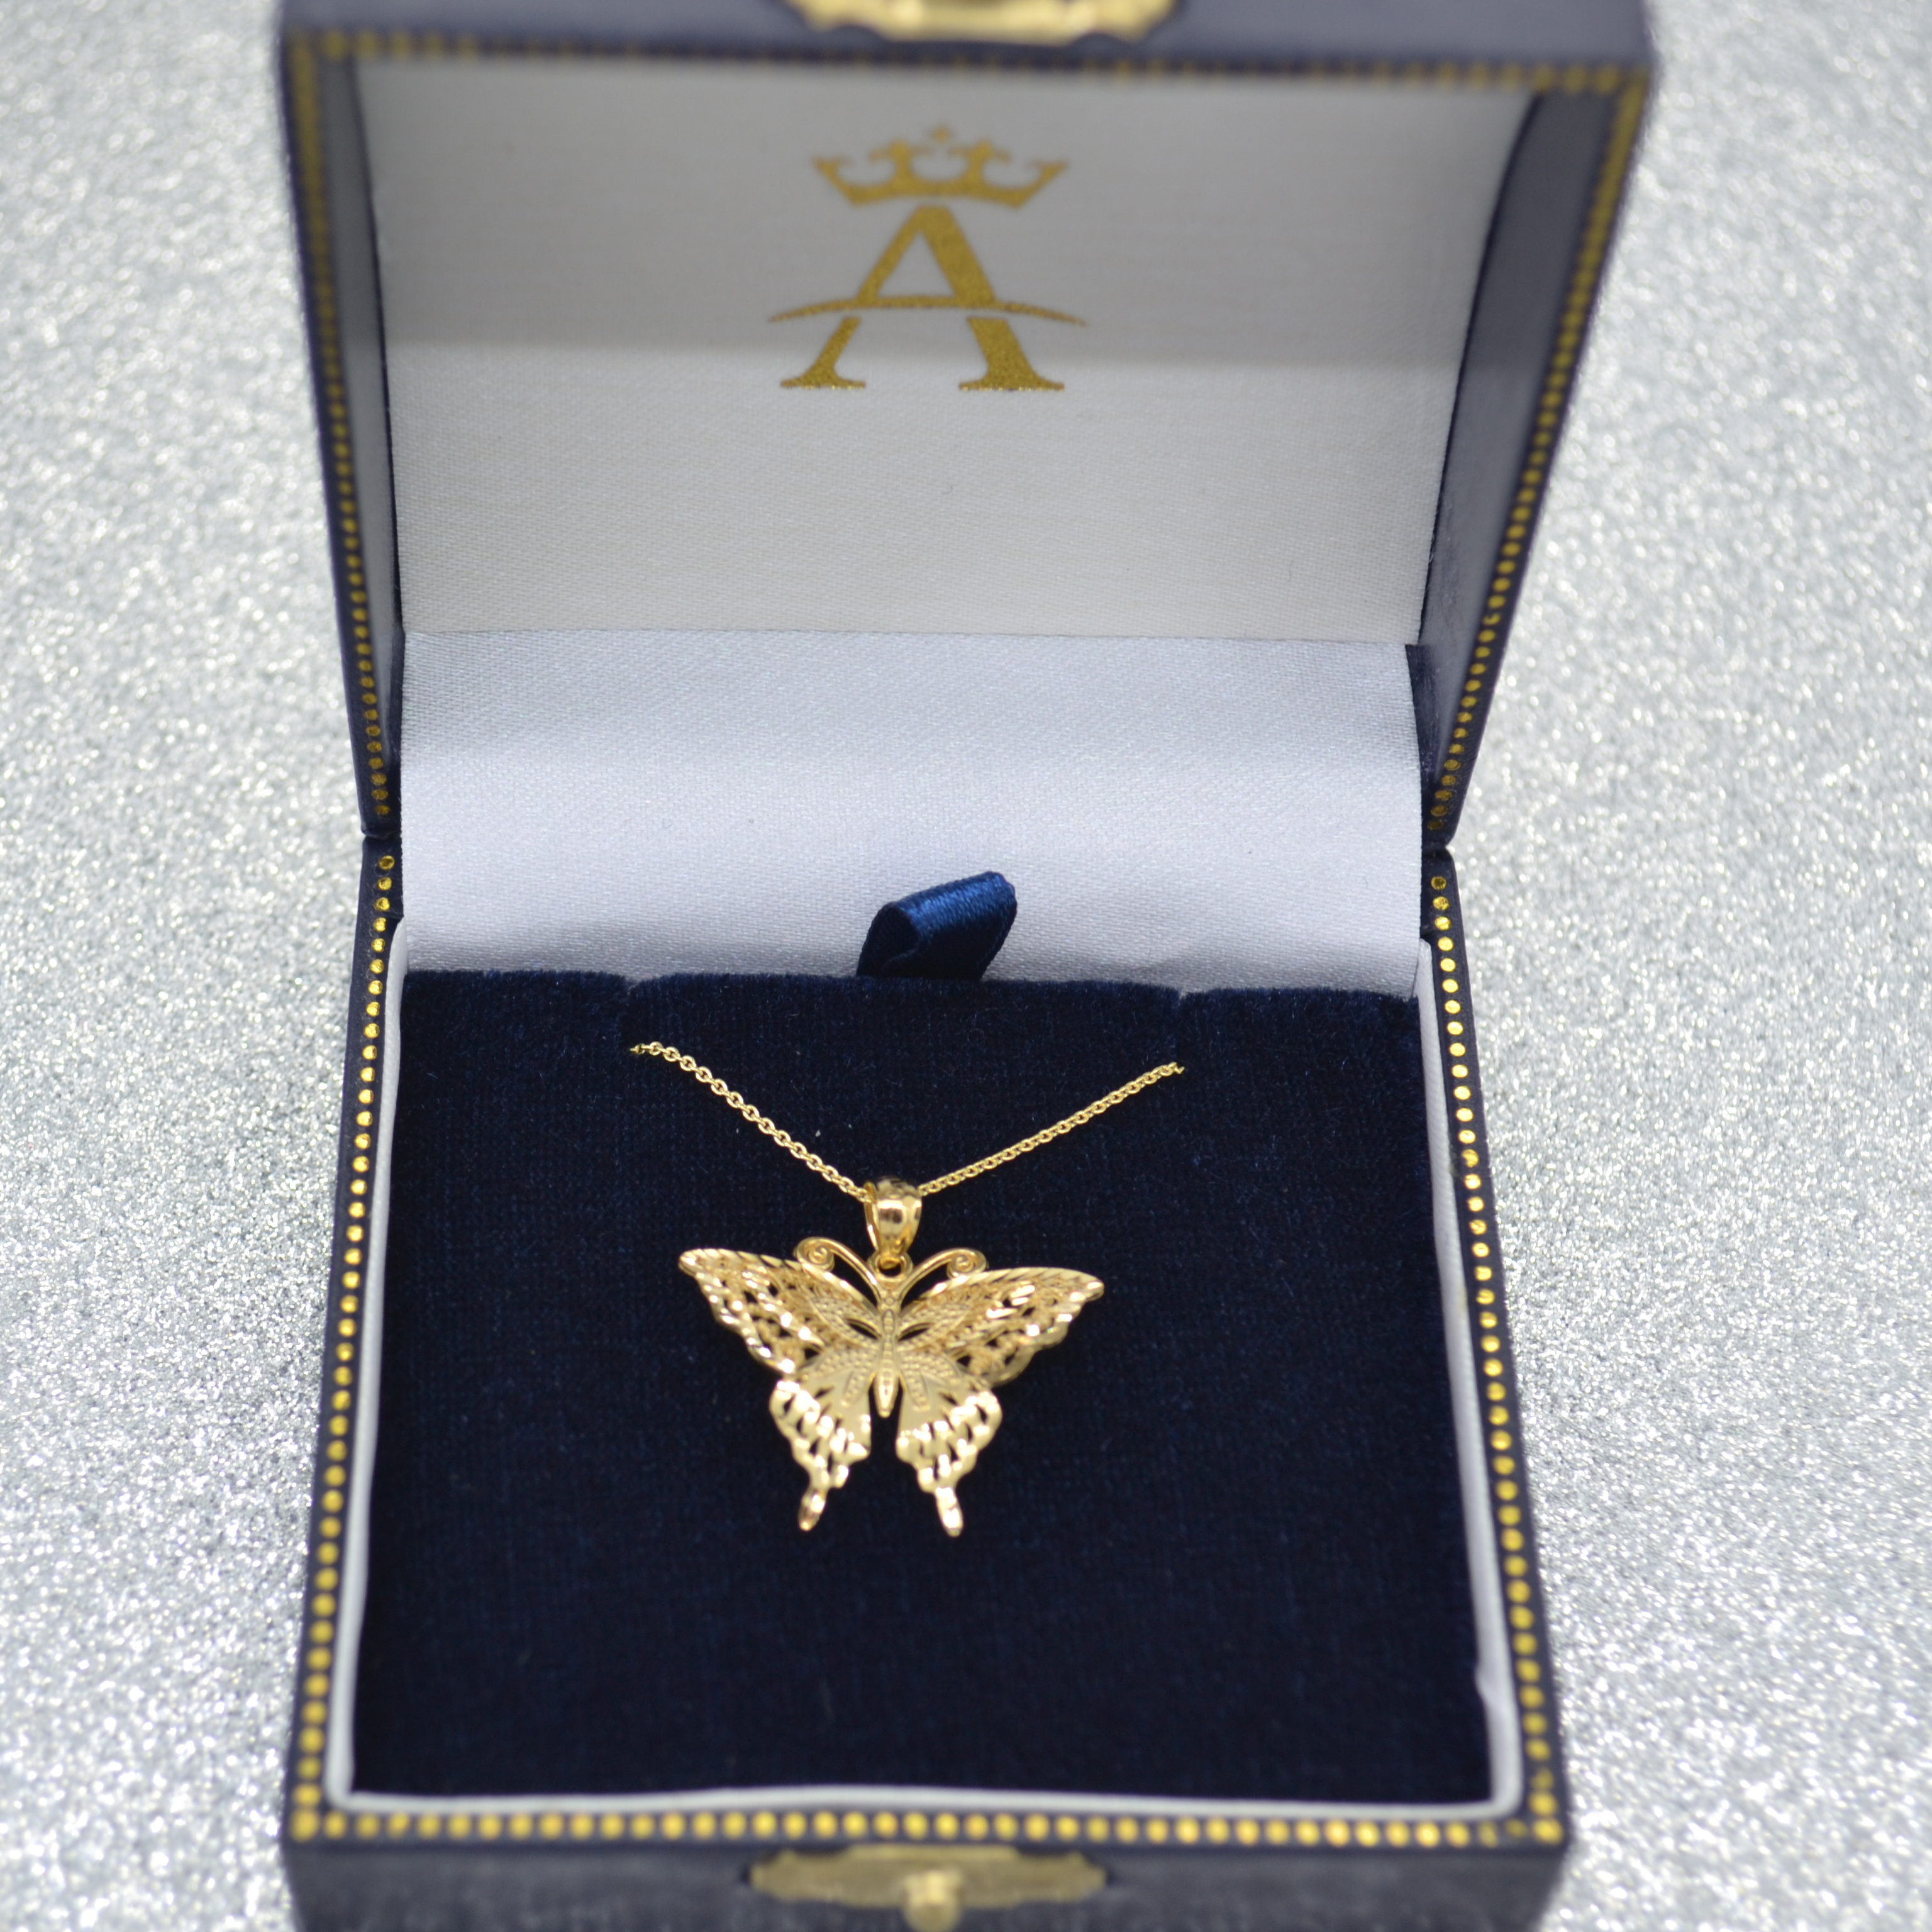 Butterfly Shaped Pendant Necklace 14K Yellow Gold